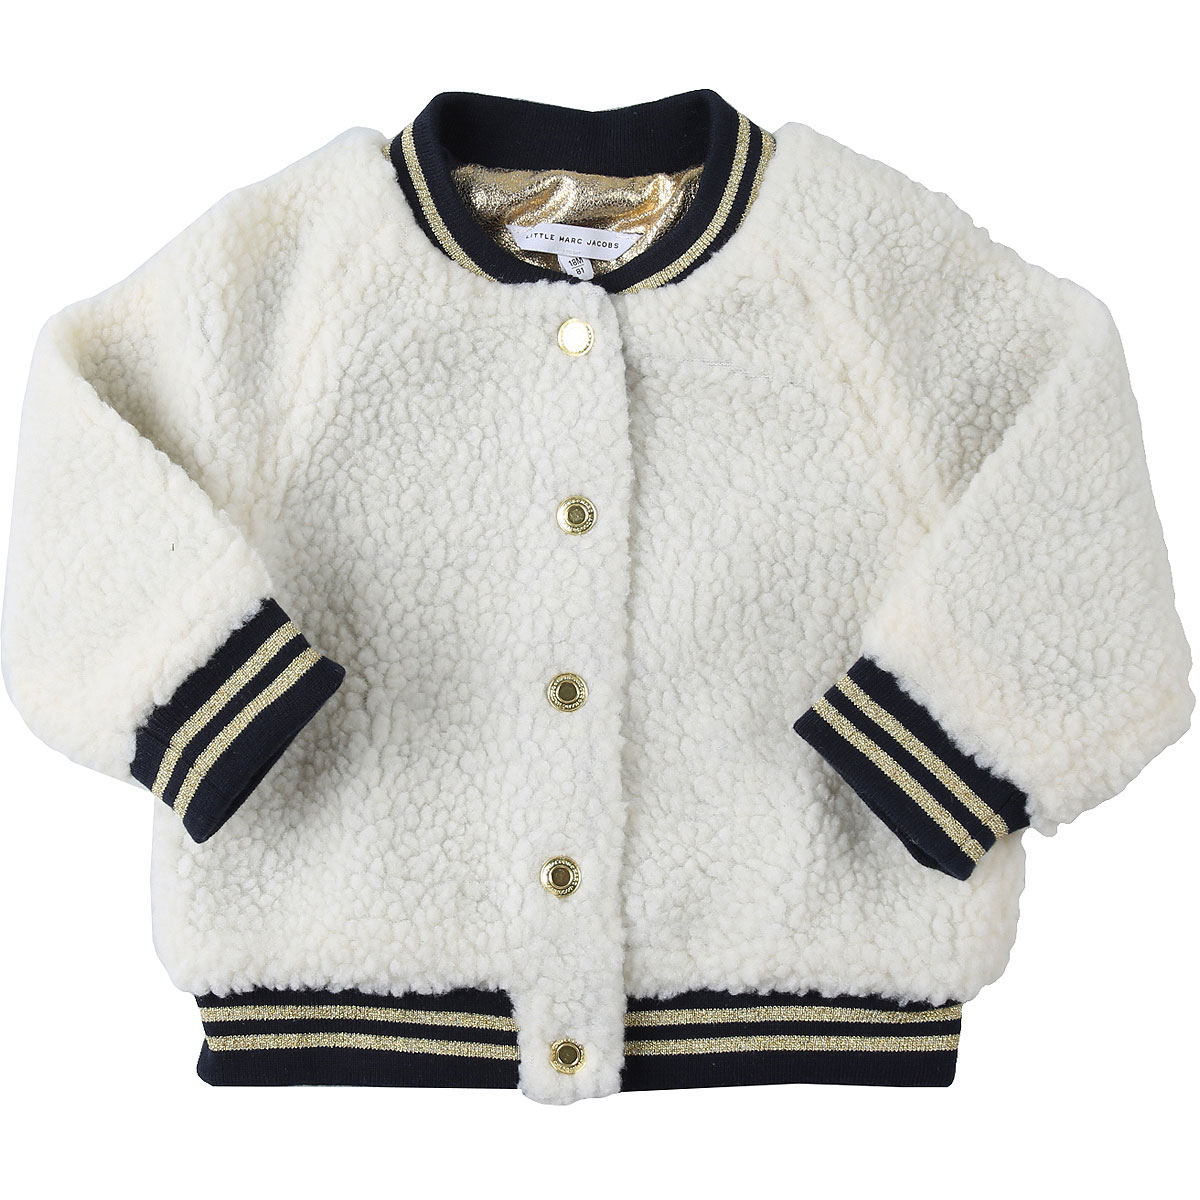 Marc Jacobs Baby Jacket for Girls On Sale, White, polyester, 2019, 12M 18M 2Y 3Y 9M